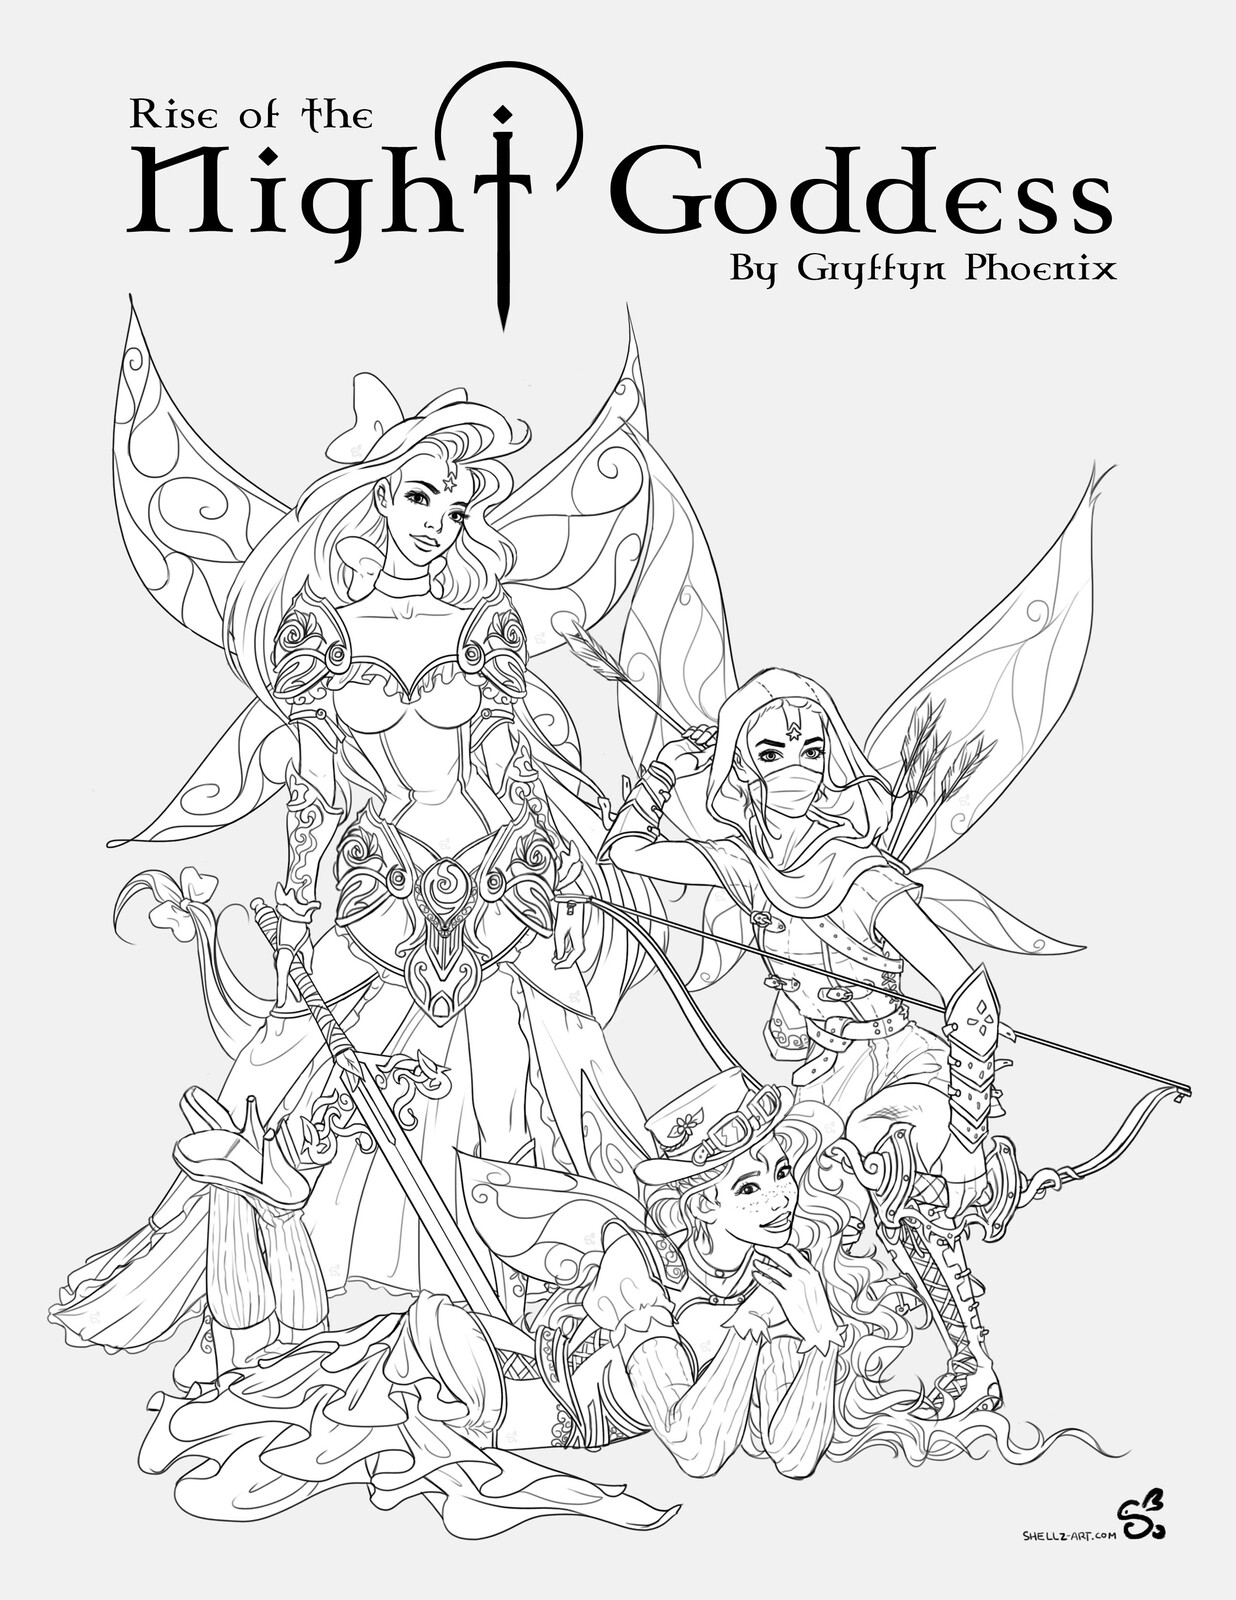 Avalerion Books | Rise of the Night Goddess - The Aguane